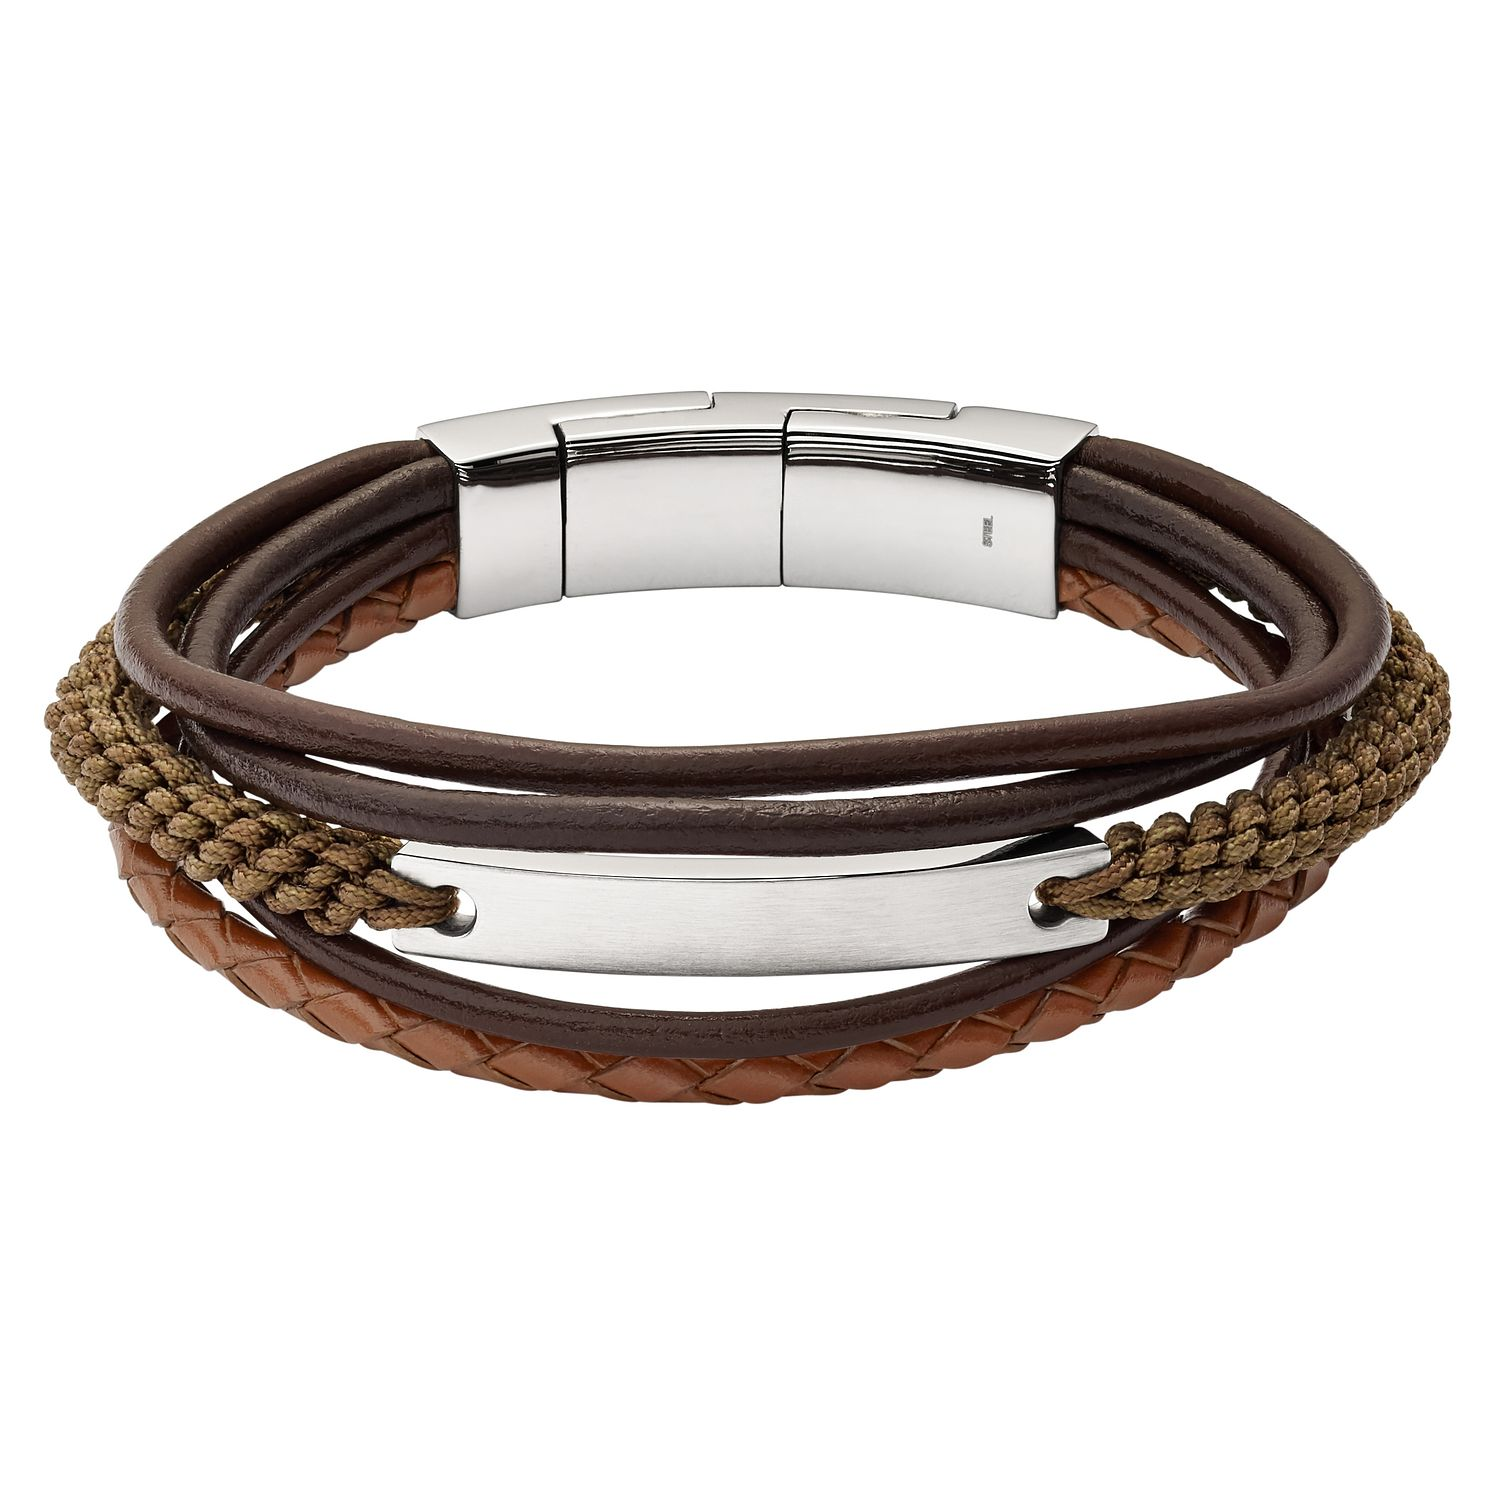 Fossil Vintage Casual Men's Stainless Steel Leather Bracelet - Product number 8217270